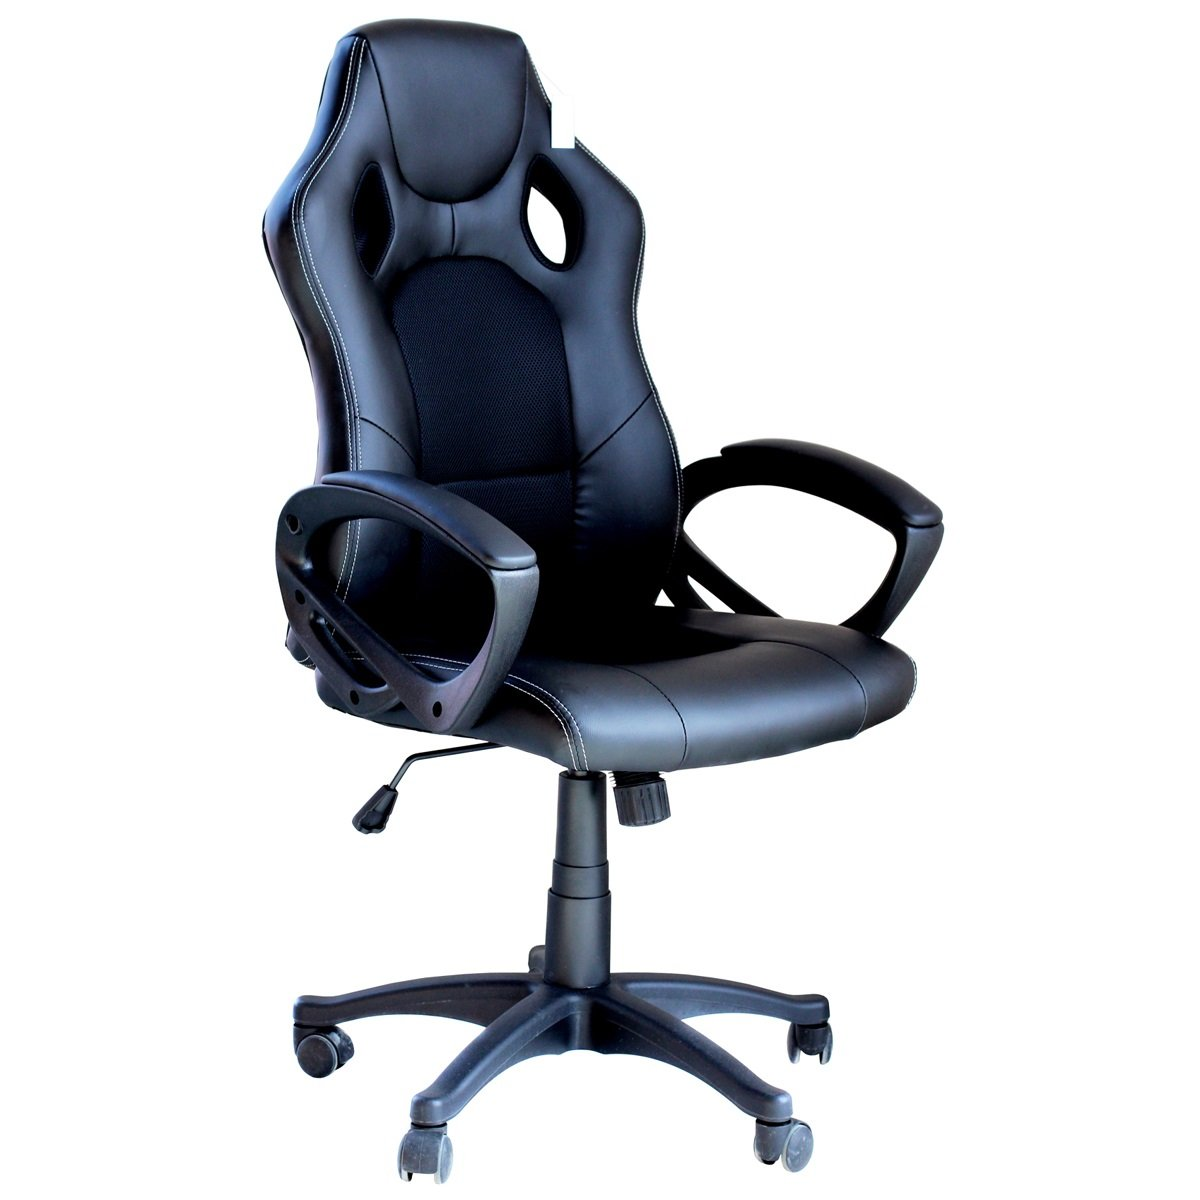 Video Gaming Chair Home Office Computer Chair With Height Adjustable Ergonomic Lumbar Support Mesh High Back Racing Chair (Black)